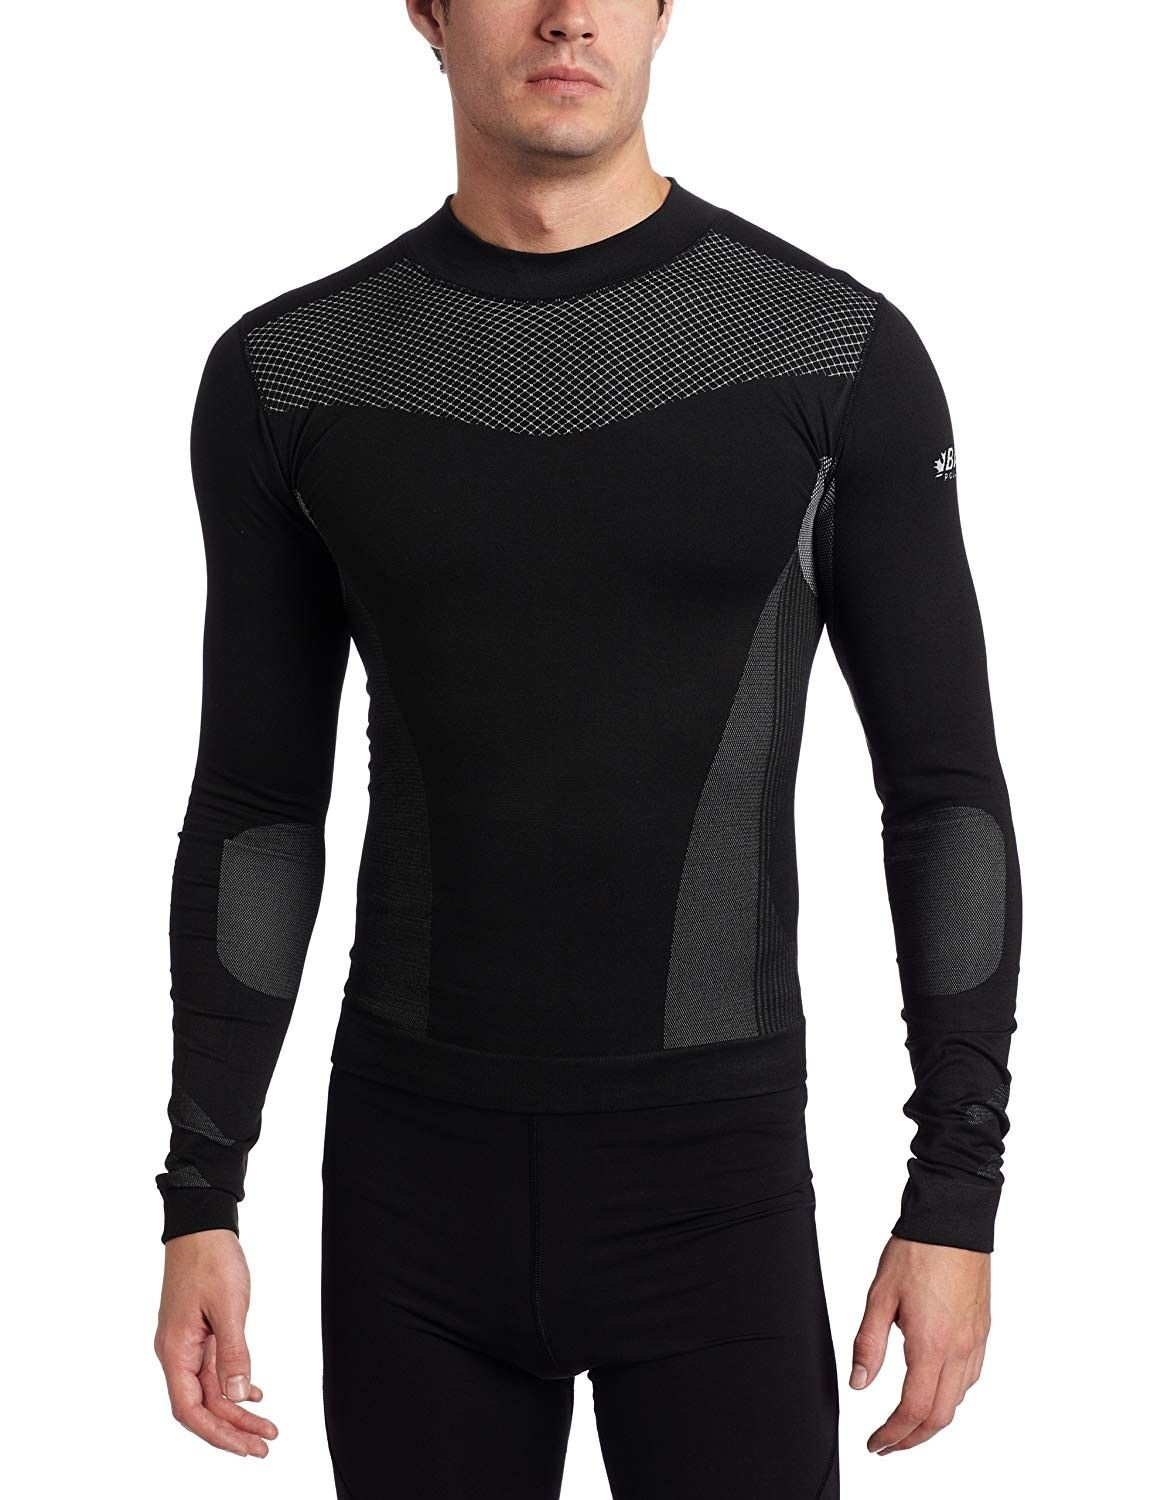 Men's Base-Layer Technical Long Sleeve Top - Charcoal - C8114UP6DZT Size  Medium   Outdoor outfit, Mens outdoor clothing, Designer suits for men